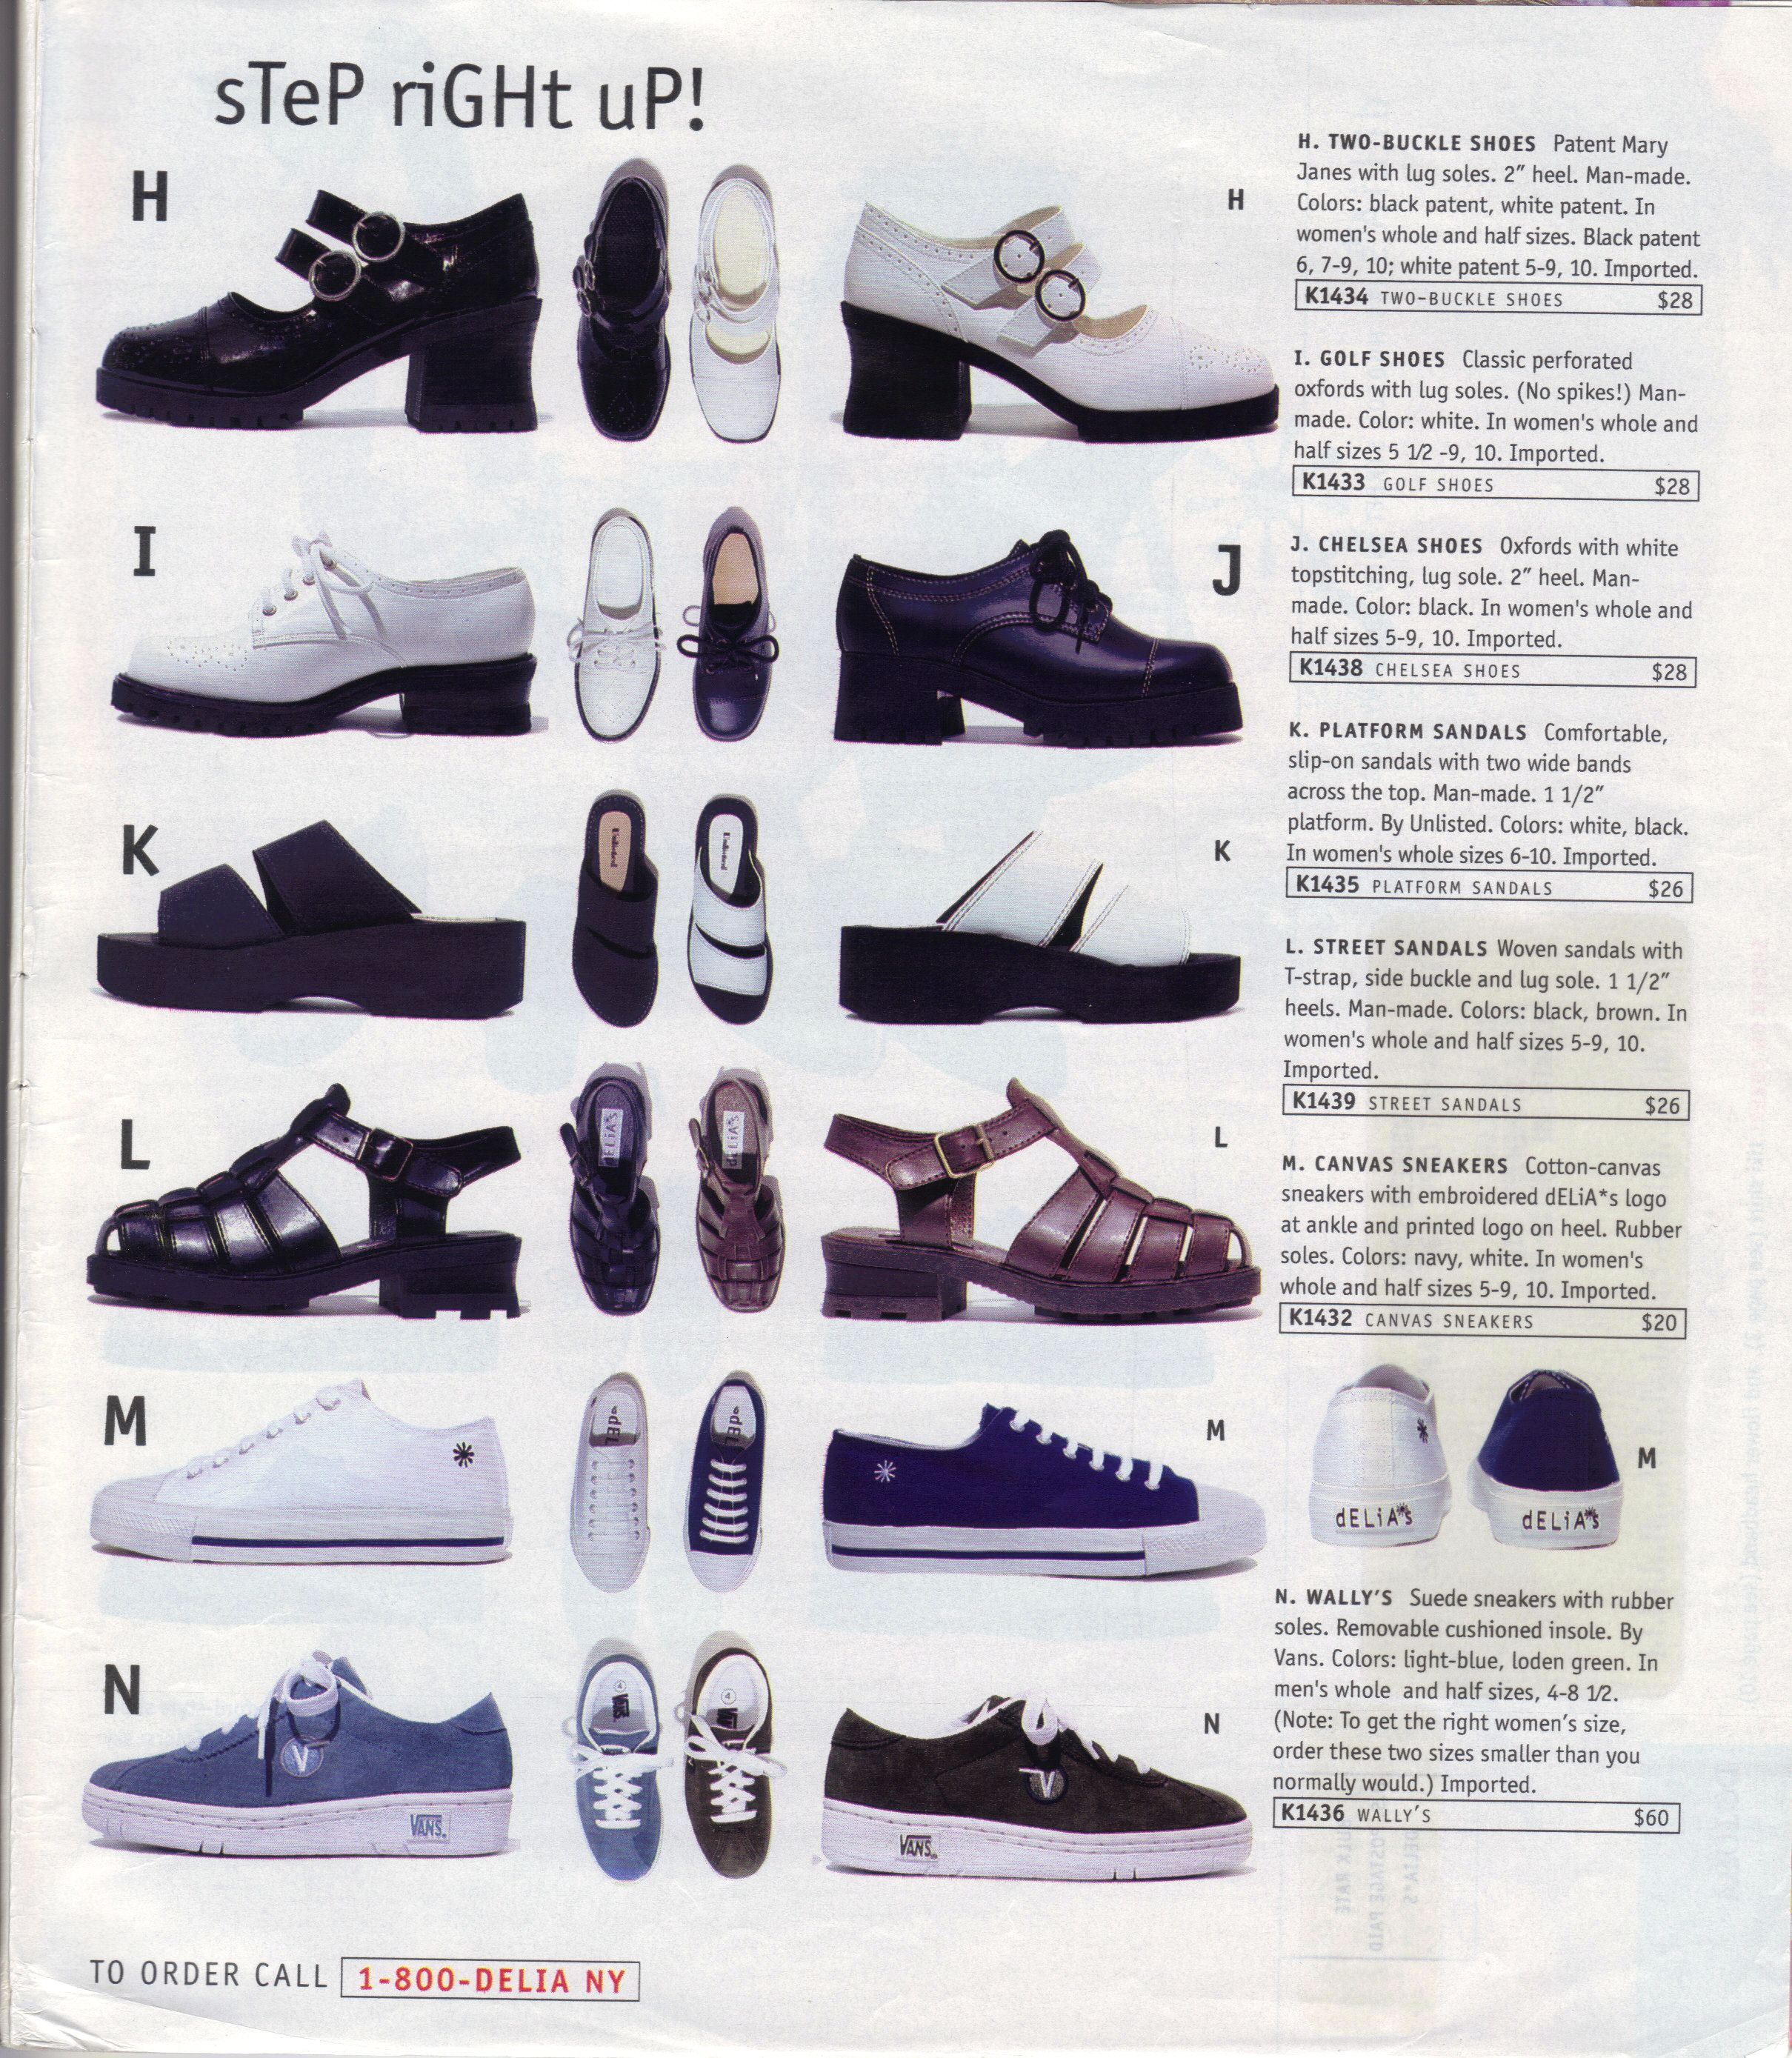 Shoes from Delia's - 1996